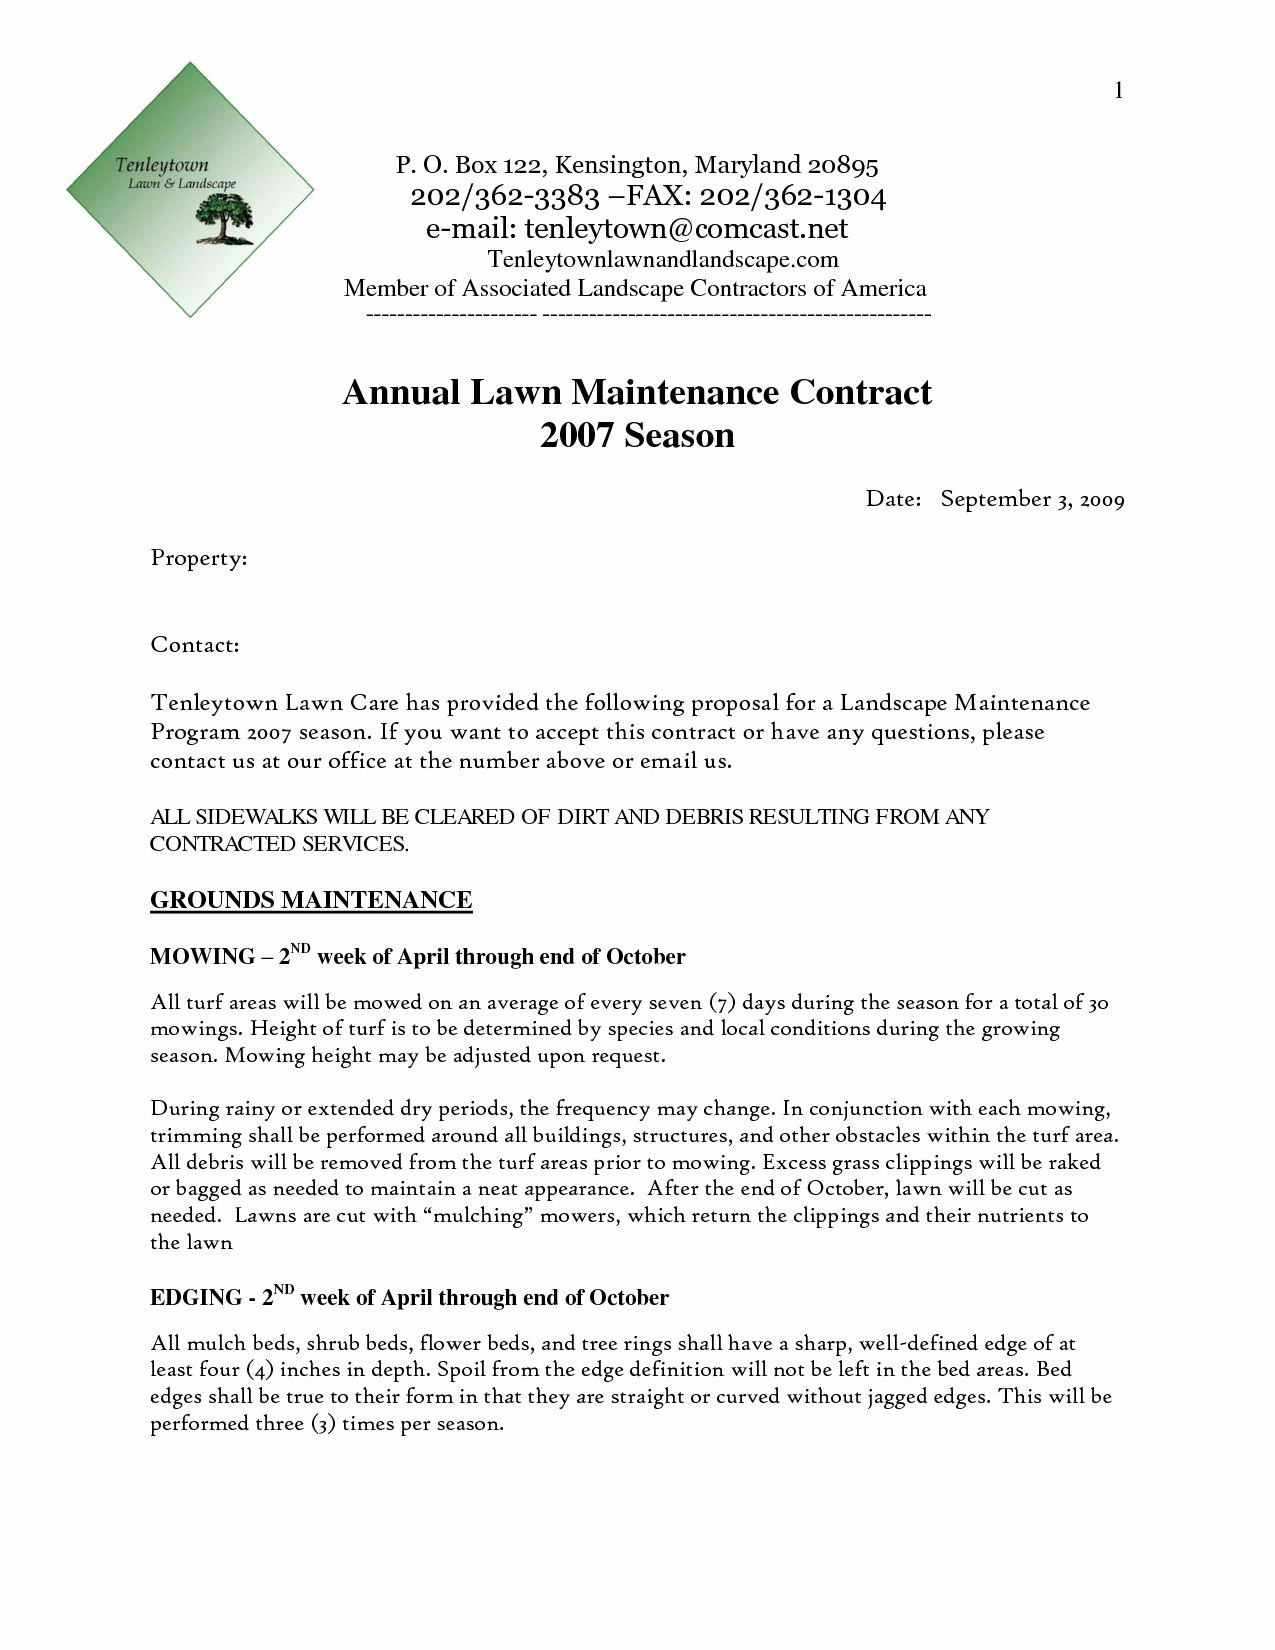 Landscape Design Proposal Template Unique Grounds Maintenance Proposal Template